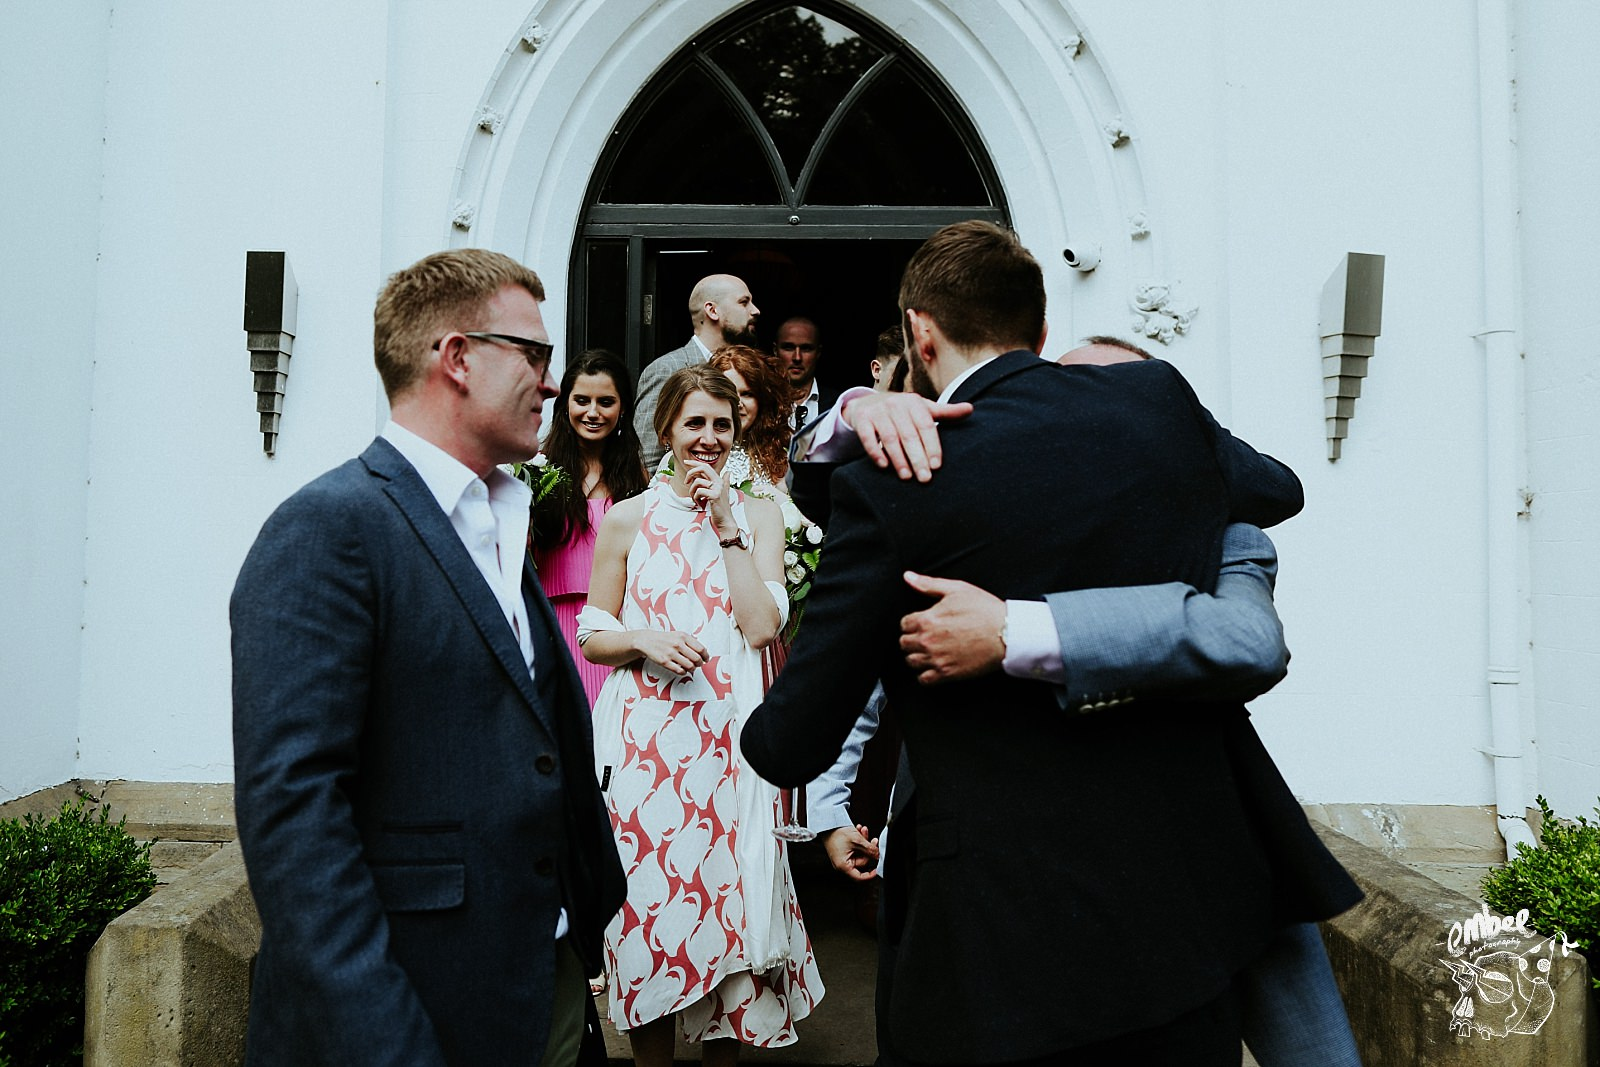 hugging at wedding